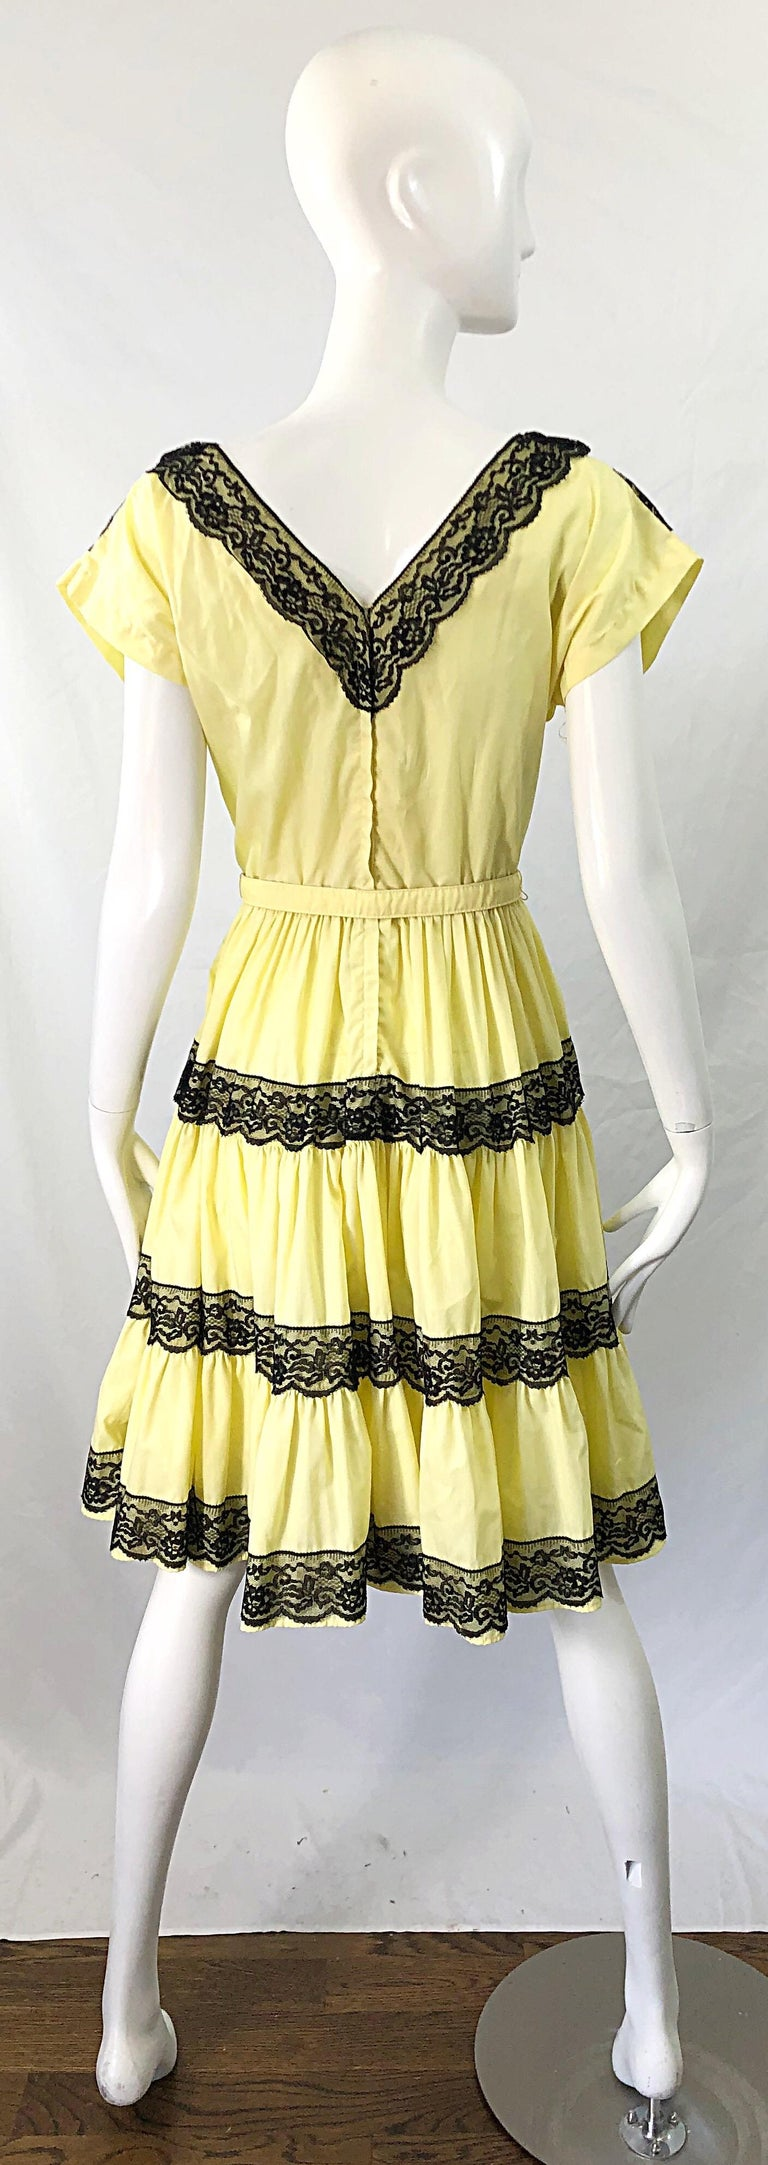 1950s Bettina of Miami Yellow + Black Cotton Lace Fit n' Flare Vintage 50s Dress For Sale 5